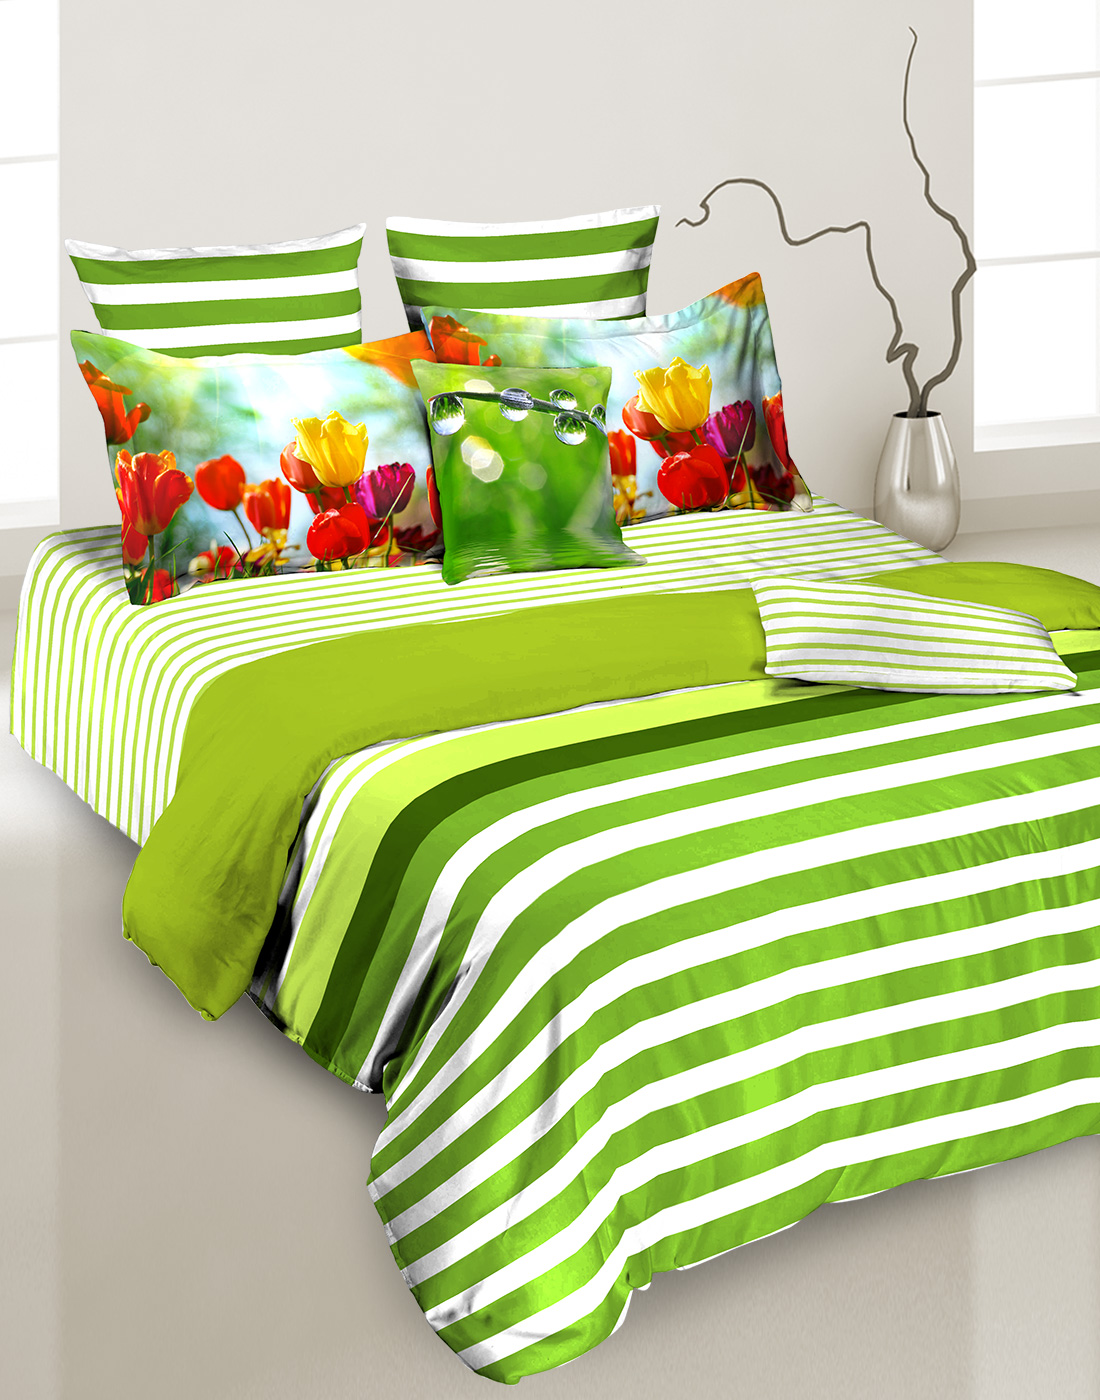 Bedsheet by Tangerine